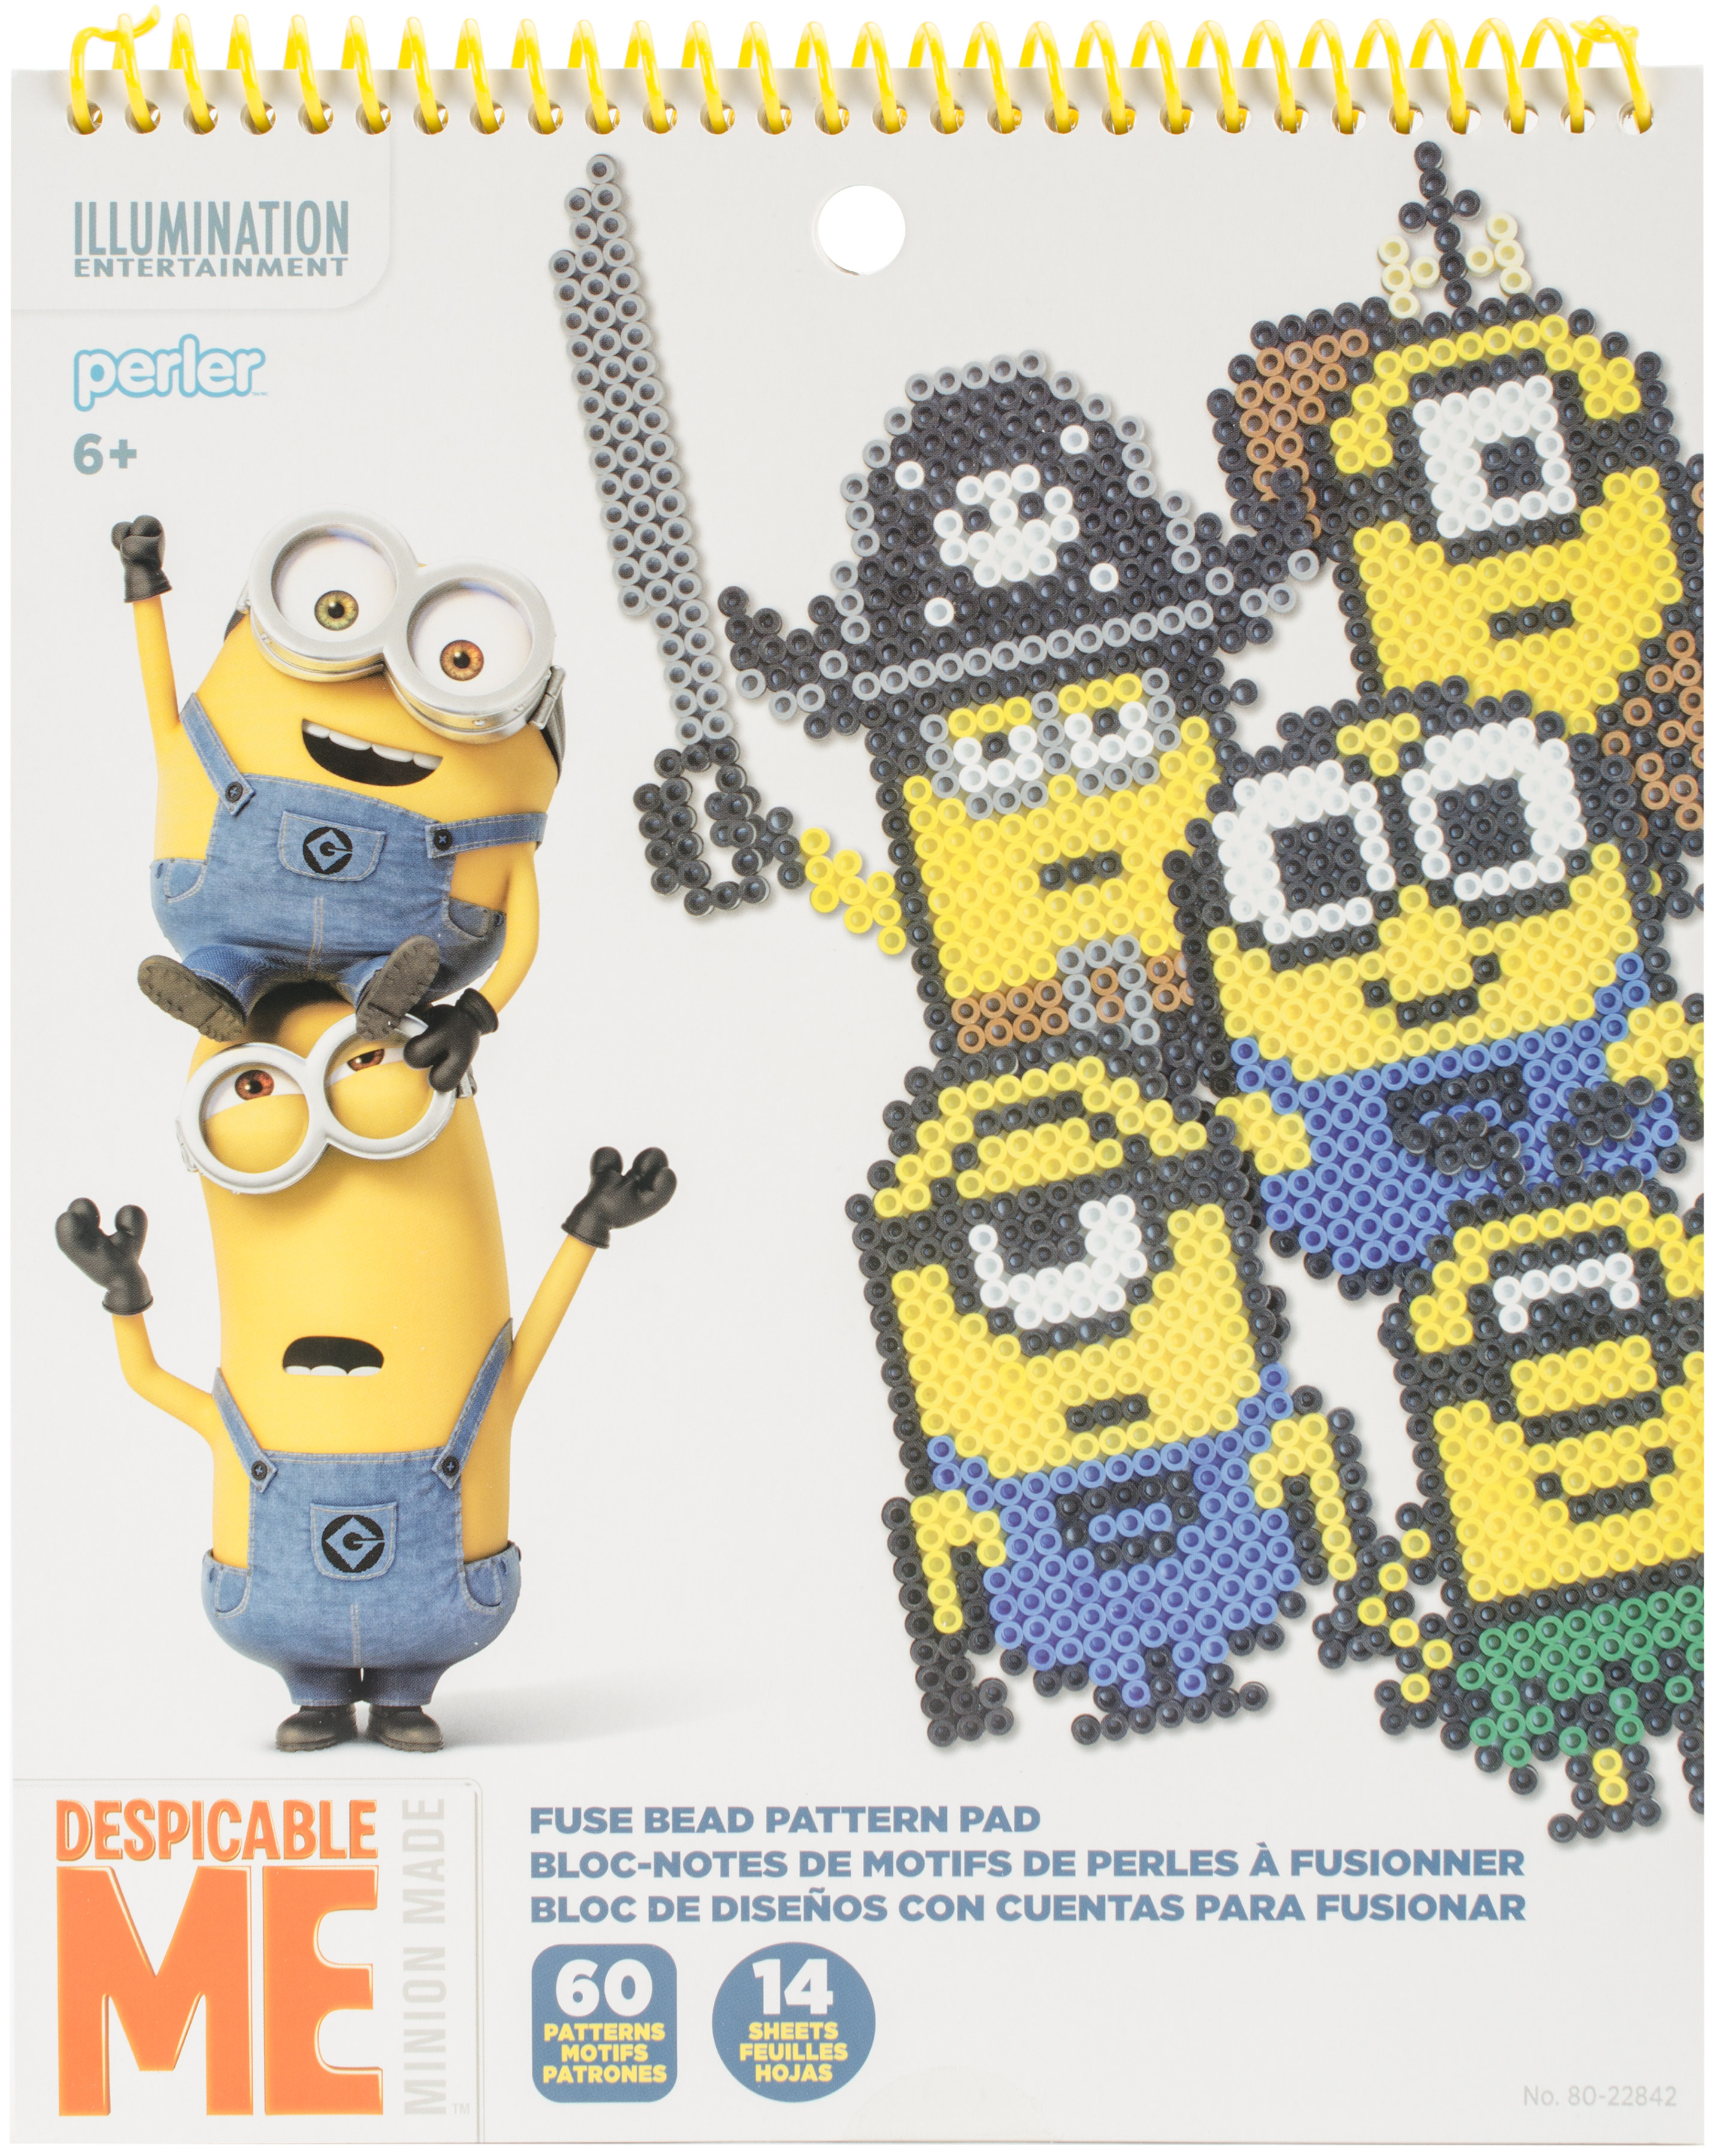 Perler Despicable Me 3 Fused Bead Pattern Pad-